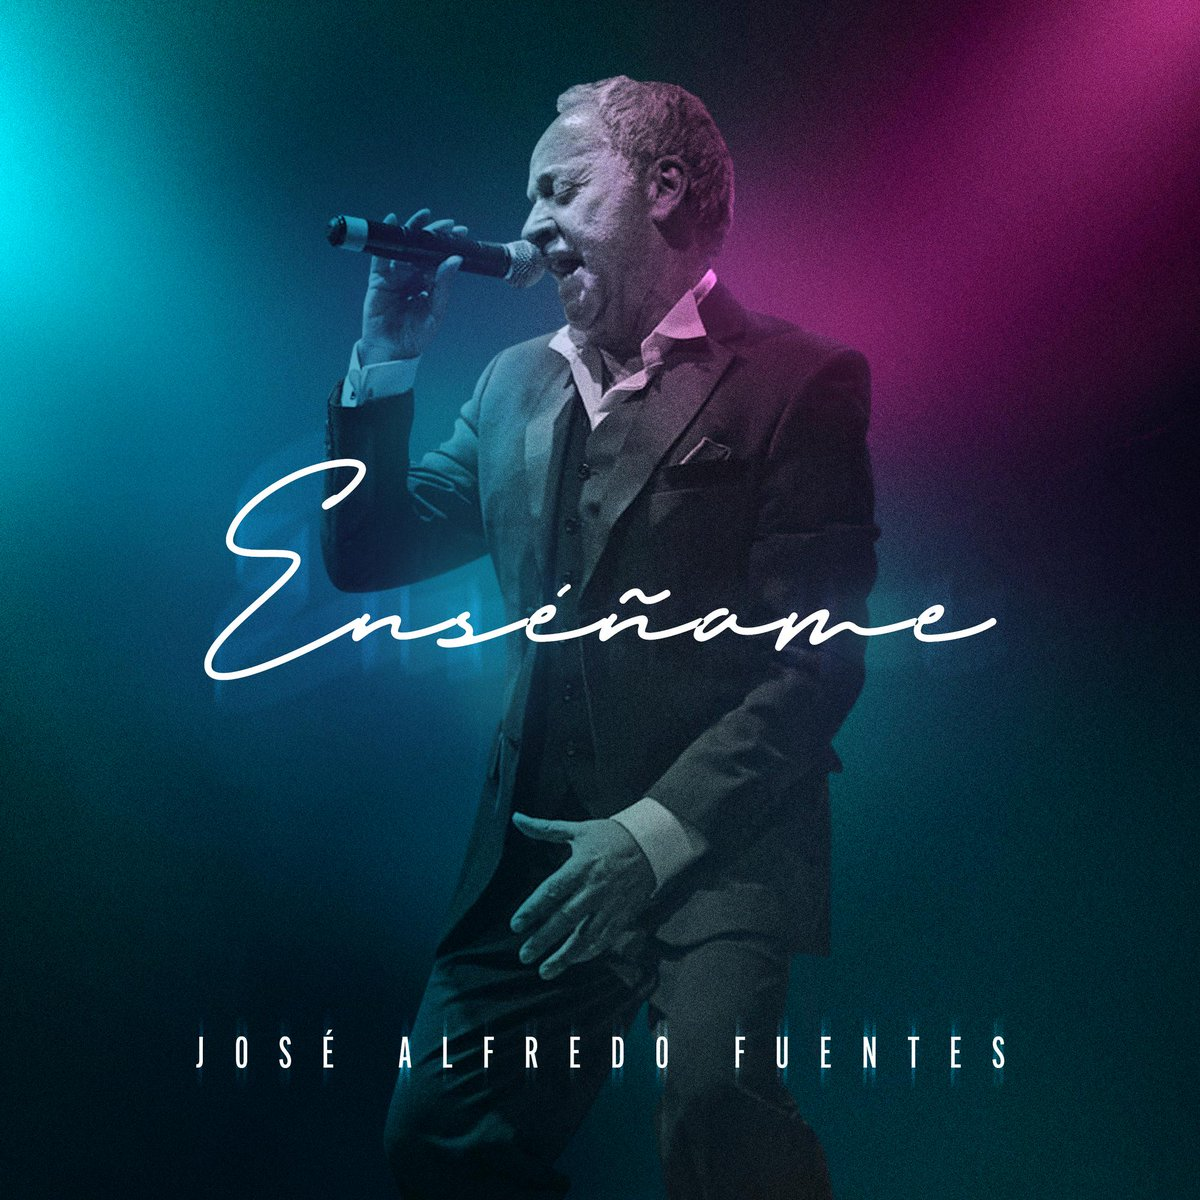 """José Fuentes Cuevas has been one of the great Chilean artists and personalities since the 1960's. Listen to the re-mastered classic """"Enséñame"""" out now"""